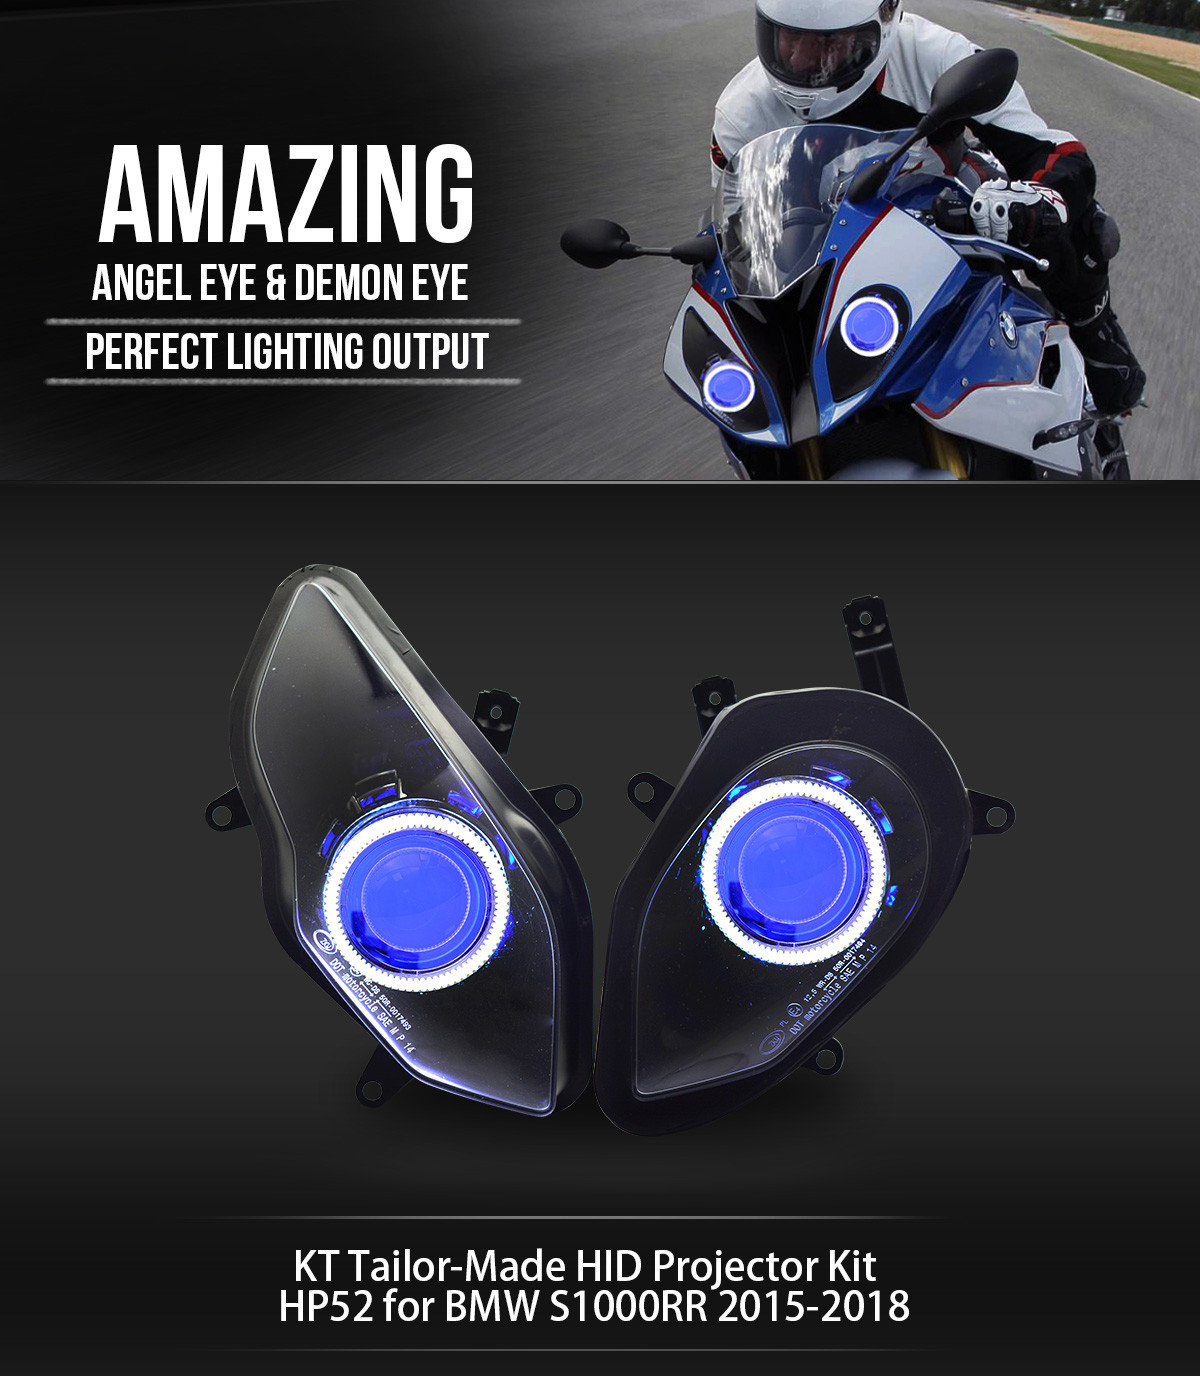 BMW S1000RR Projector 2015 2016 2017 2018